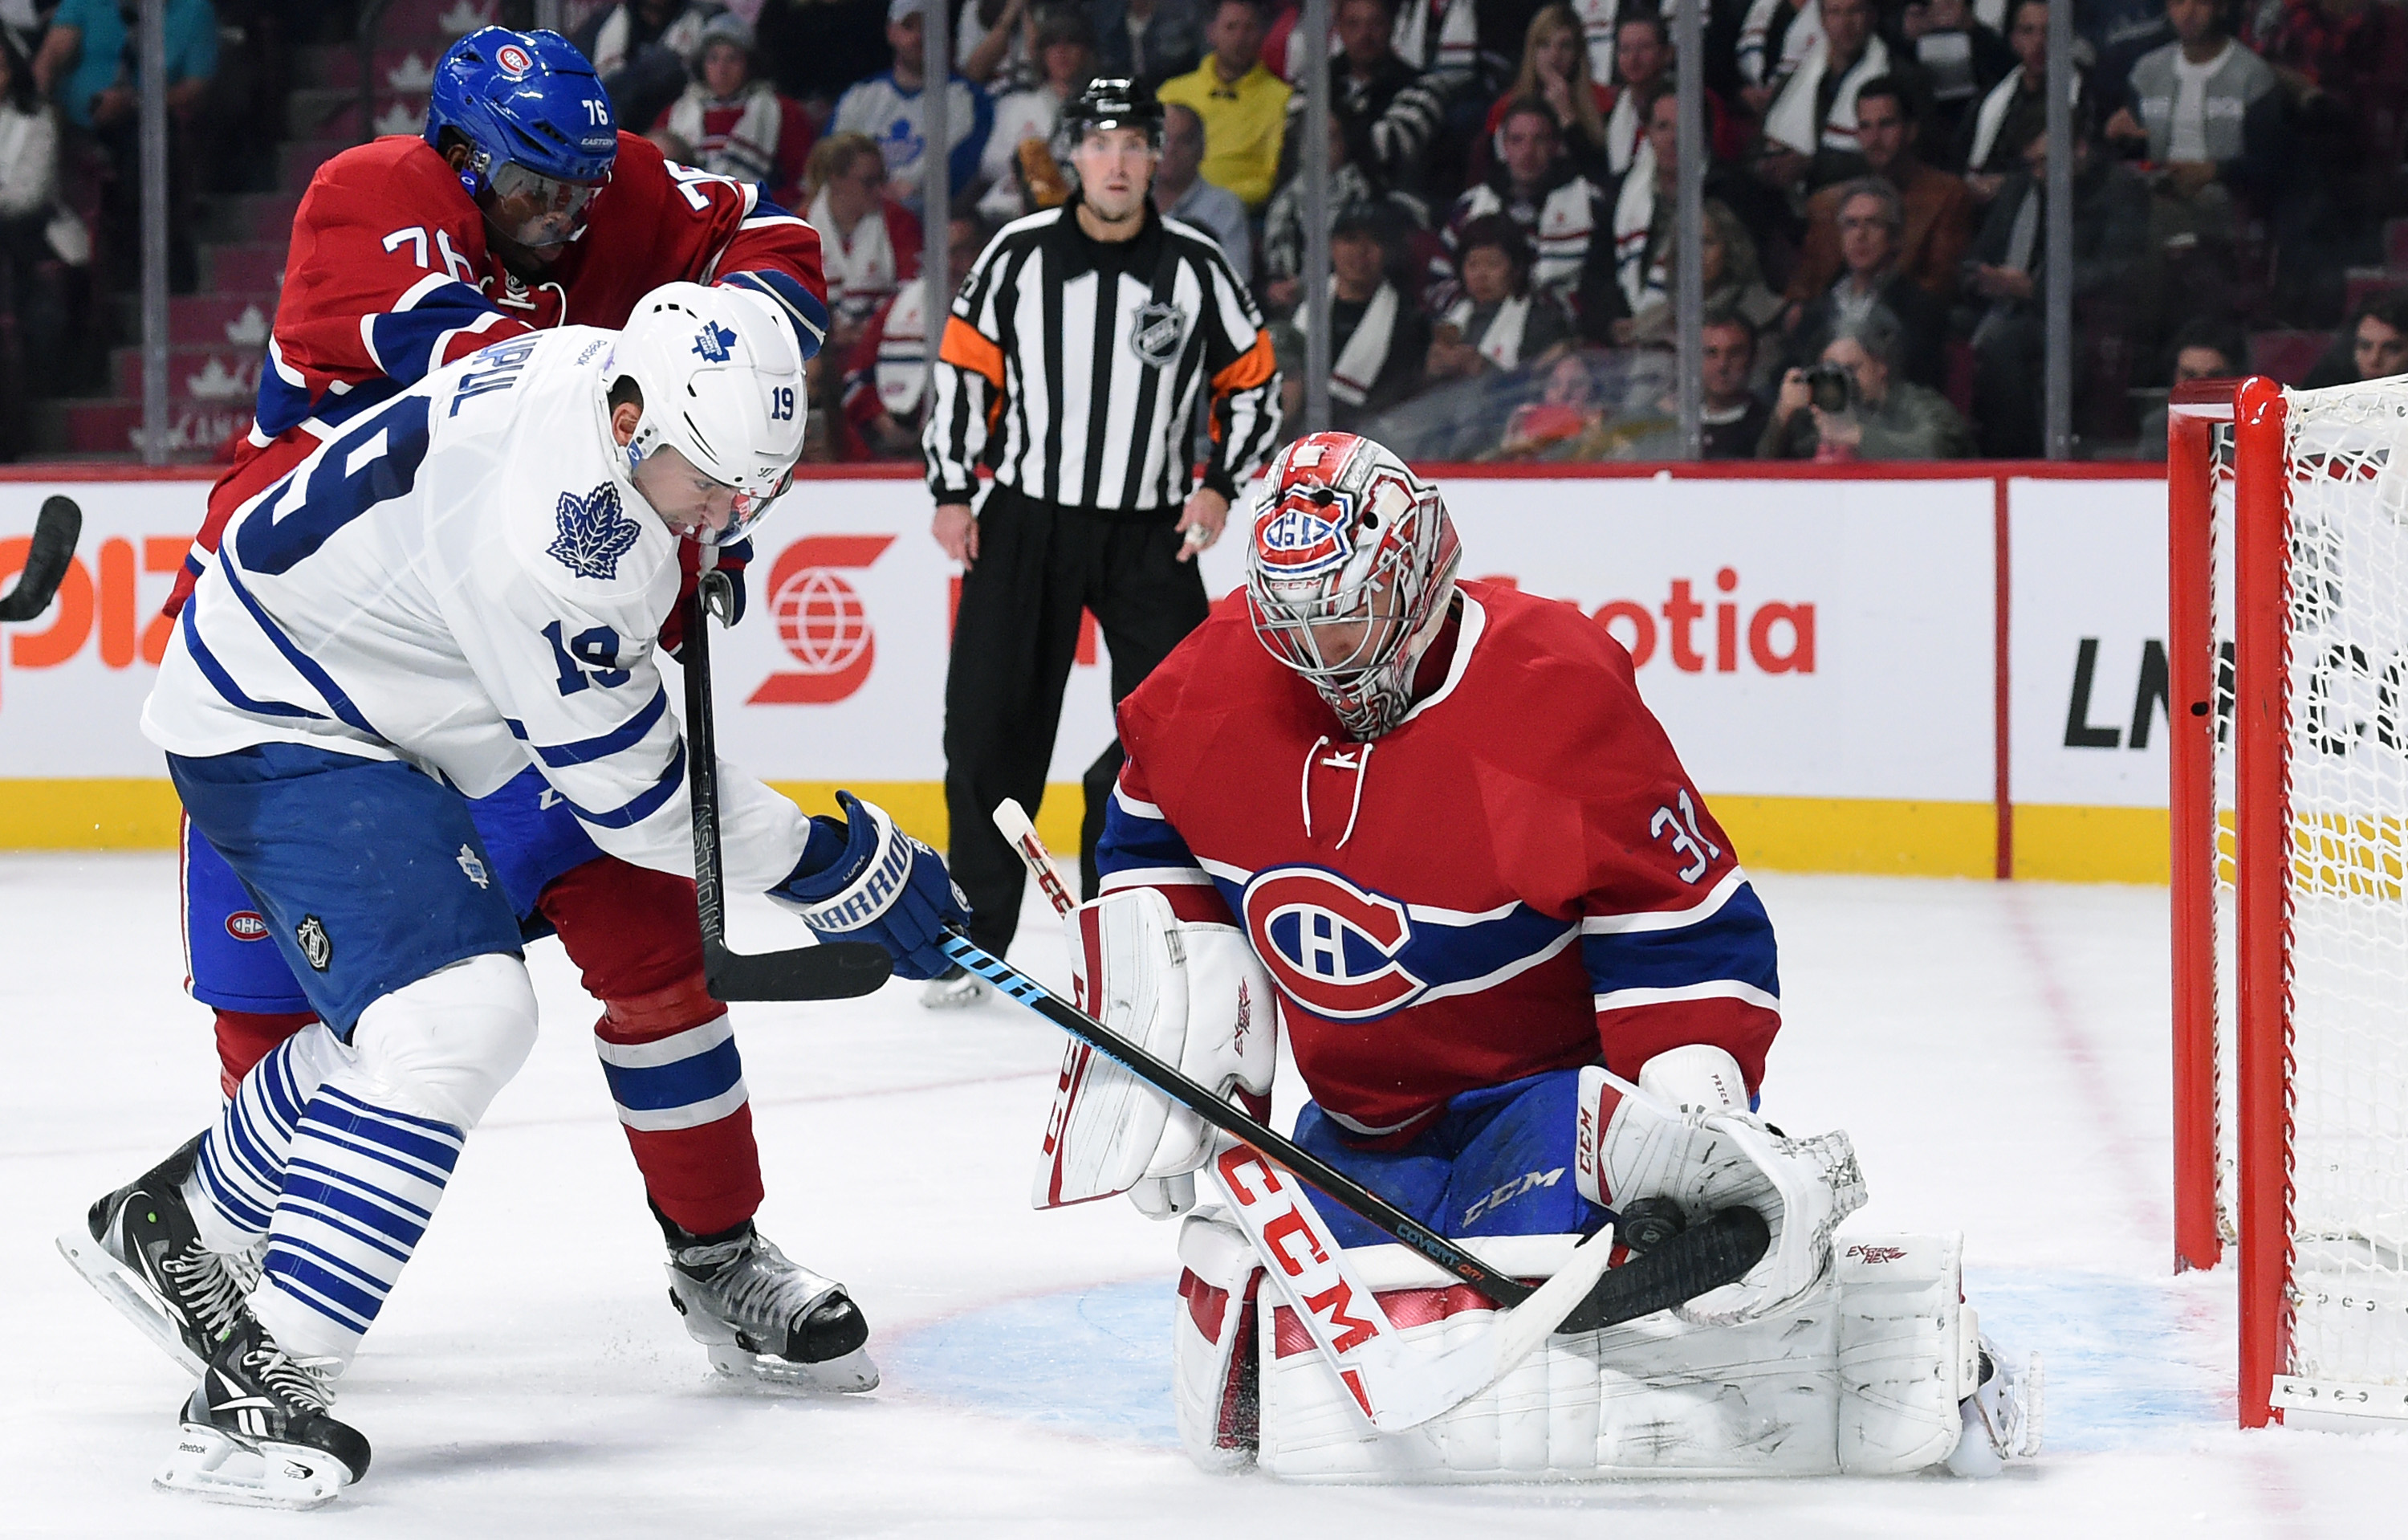 MONTREAL, QC - OCTOBER 24: of the Montreal Canadiens of the Toronto Maple Leafs in the NHL game at the Bell Centre on October 24, 2015 in Montreal, Quebec, Canada. (Photo by Francois Lacasse/NHLI via Getty Images) *** Local Caption ***